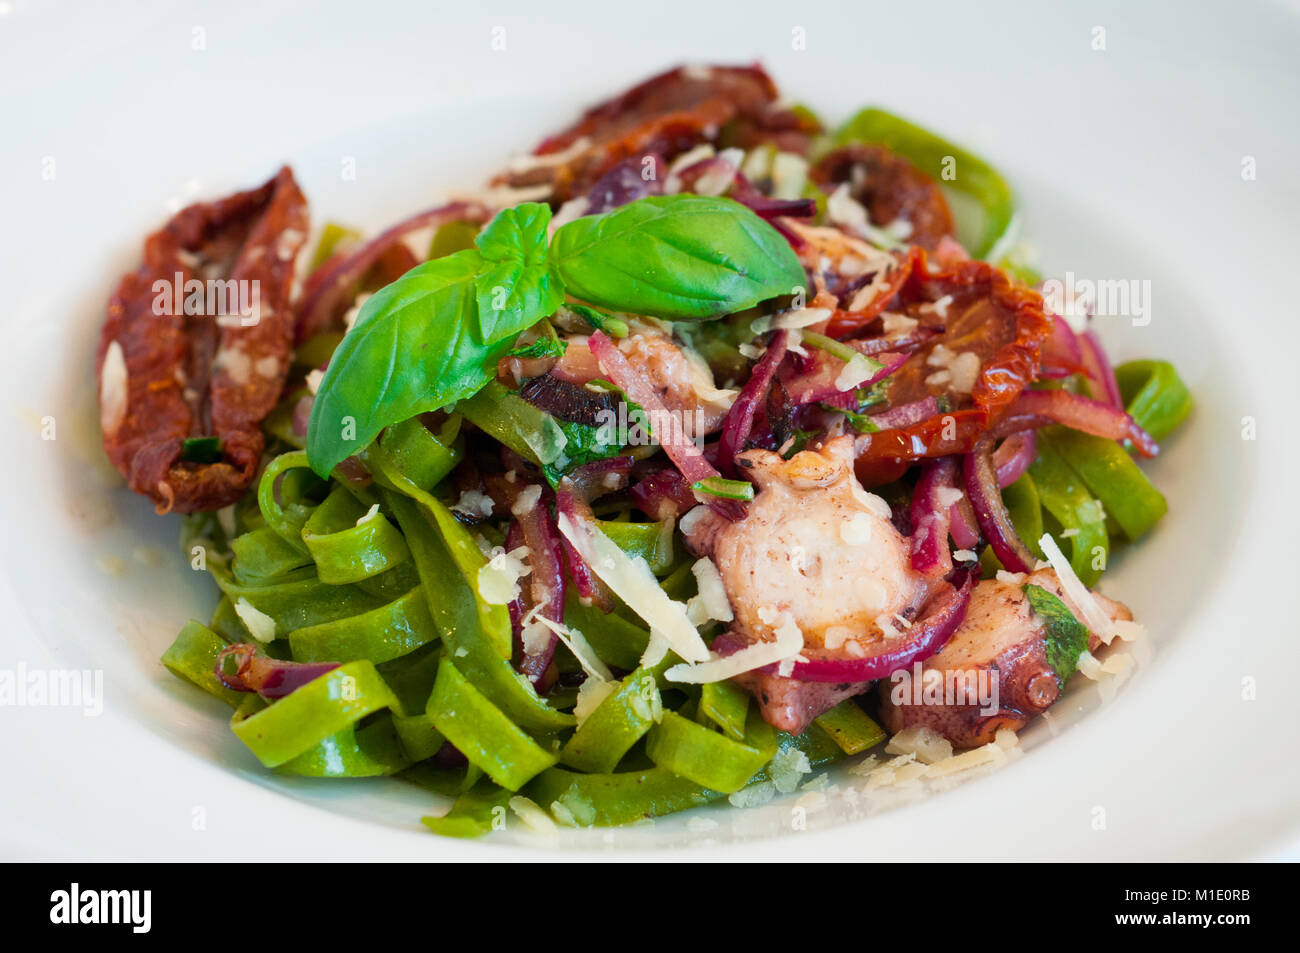 green tagliatelle pasta with seafood, sun-dried tomatoes, red onion and parmesan - Stock Image